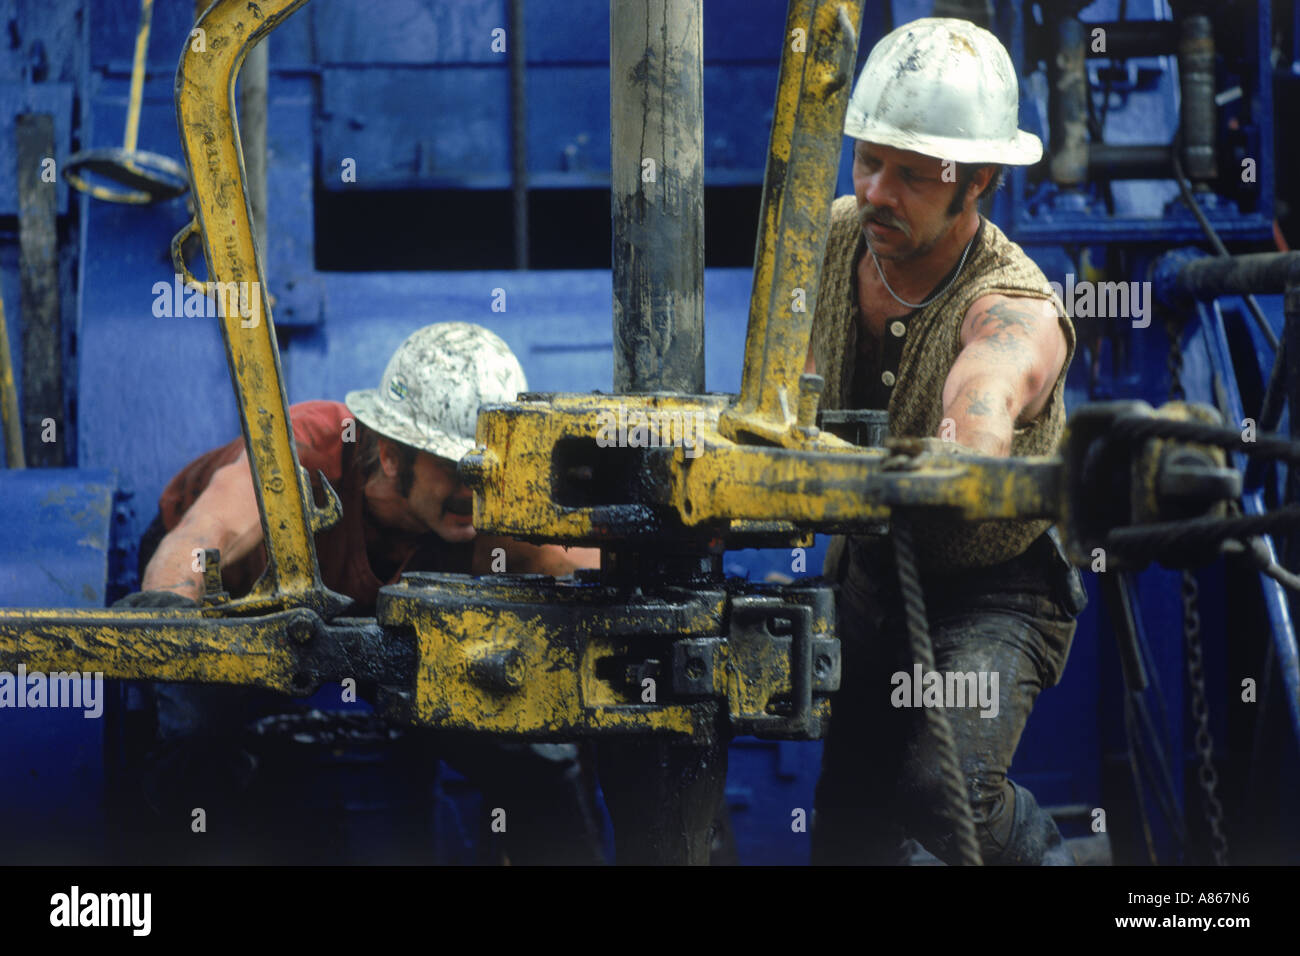 Men working on offshore oil rig coupling drill bits Stock Photo